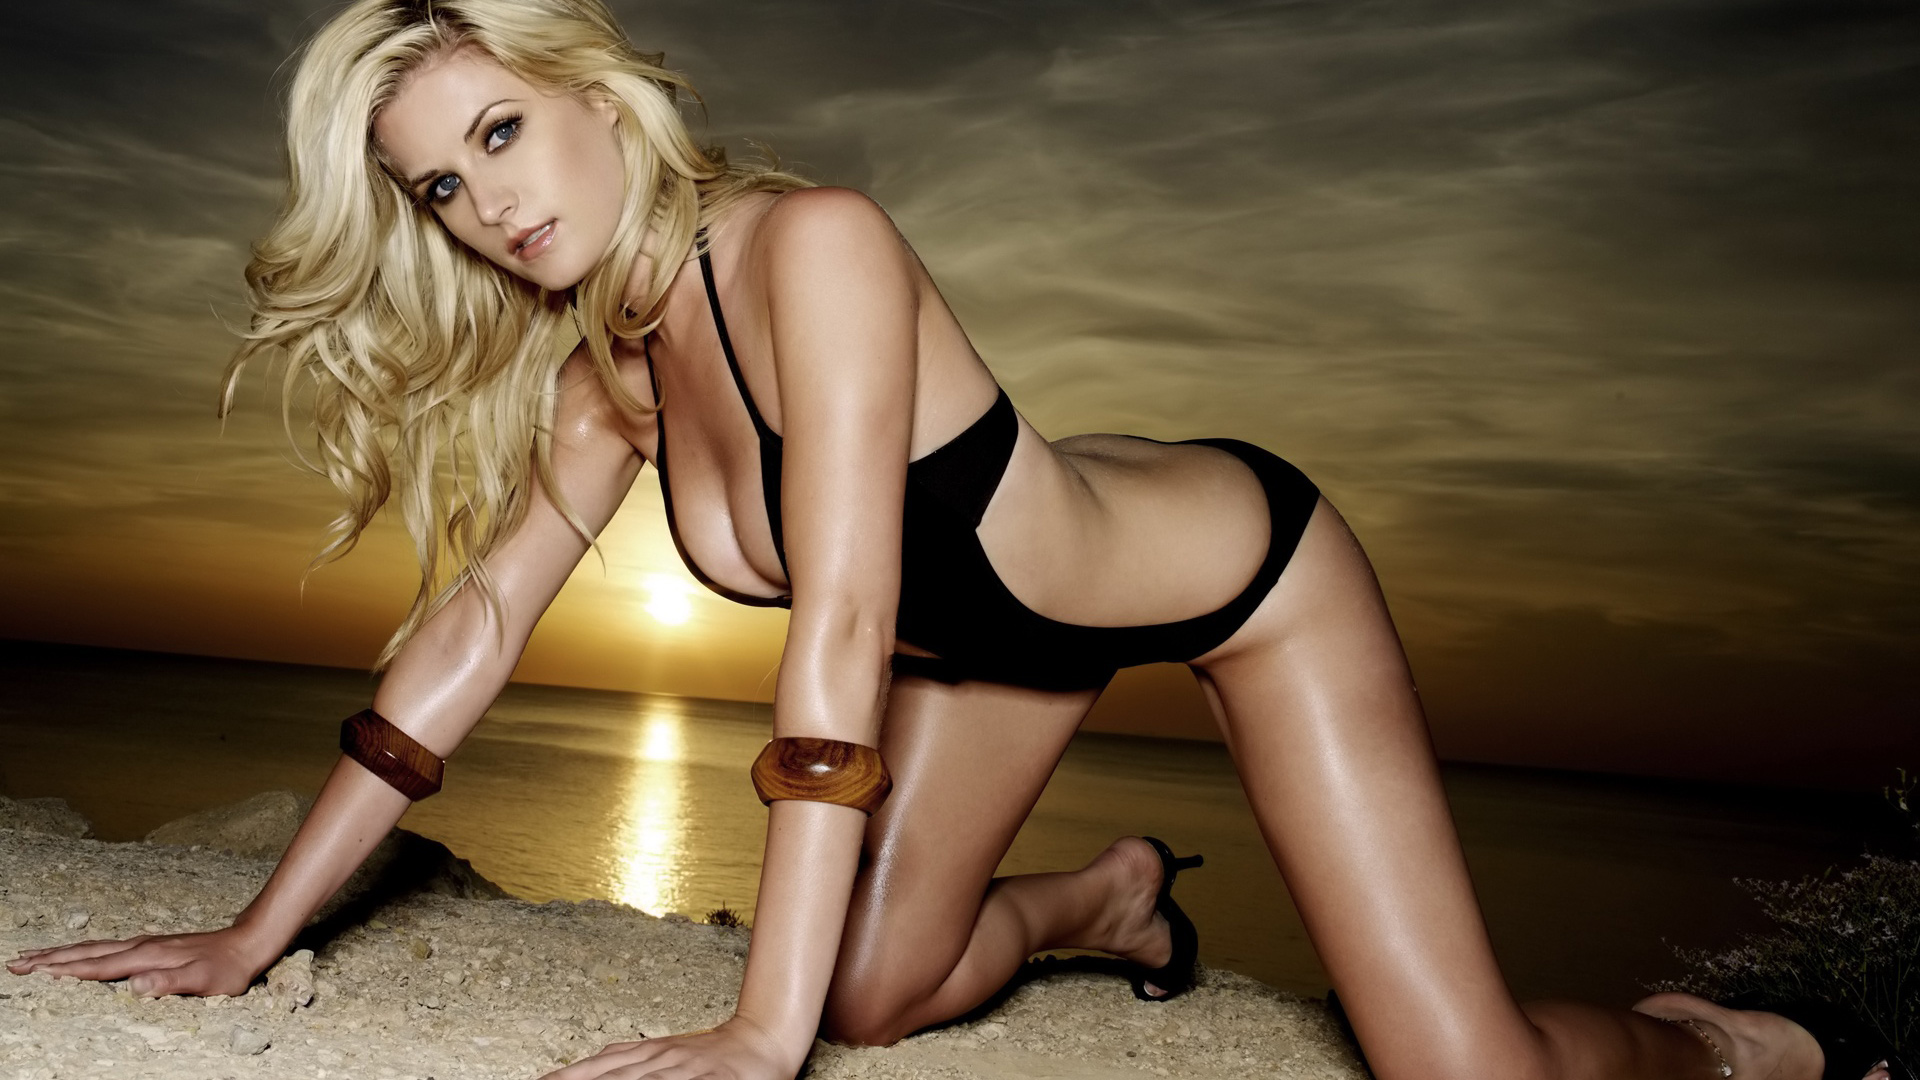 tony-y-bikini-girl-hd-wallpaper